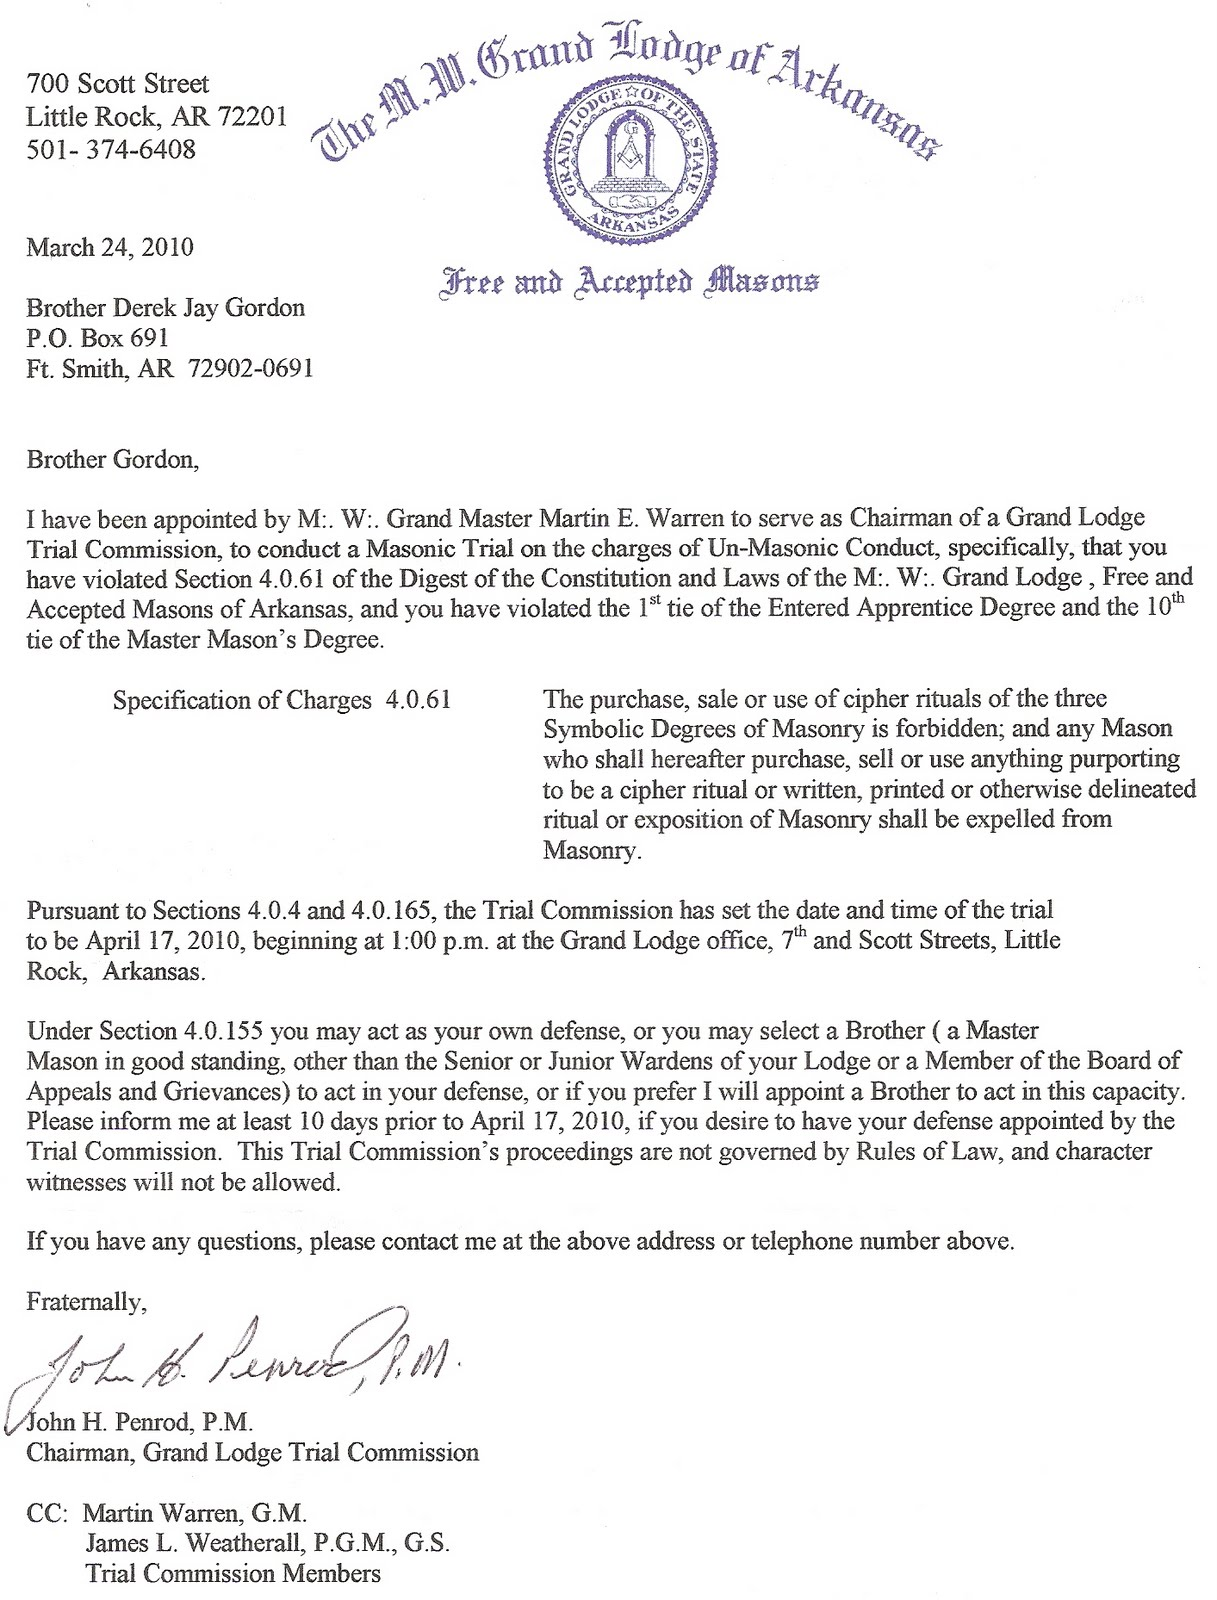 The burning taper gl of ars letter to bro derek gordon gl of ars letter to bro derek gordon altavistaventures Images